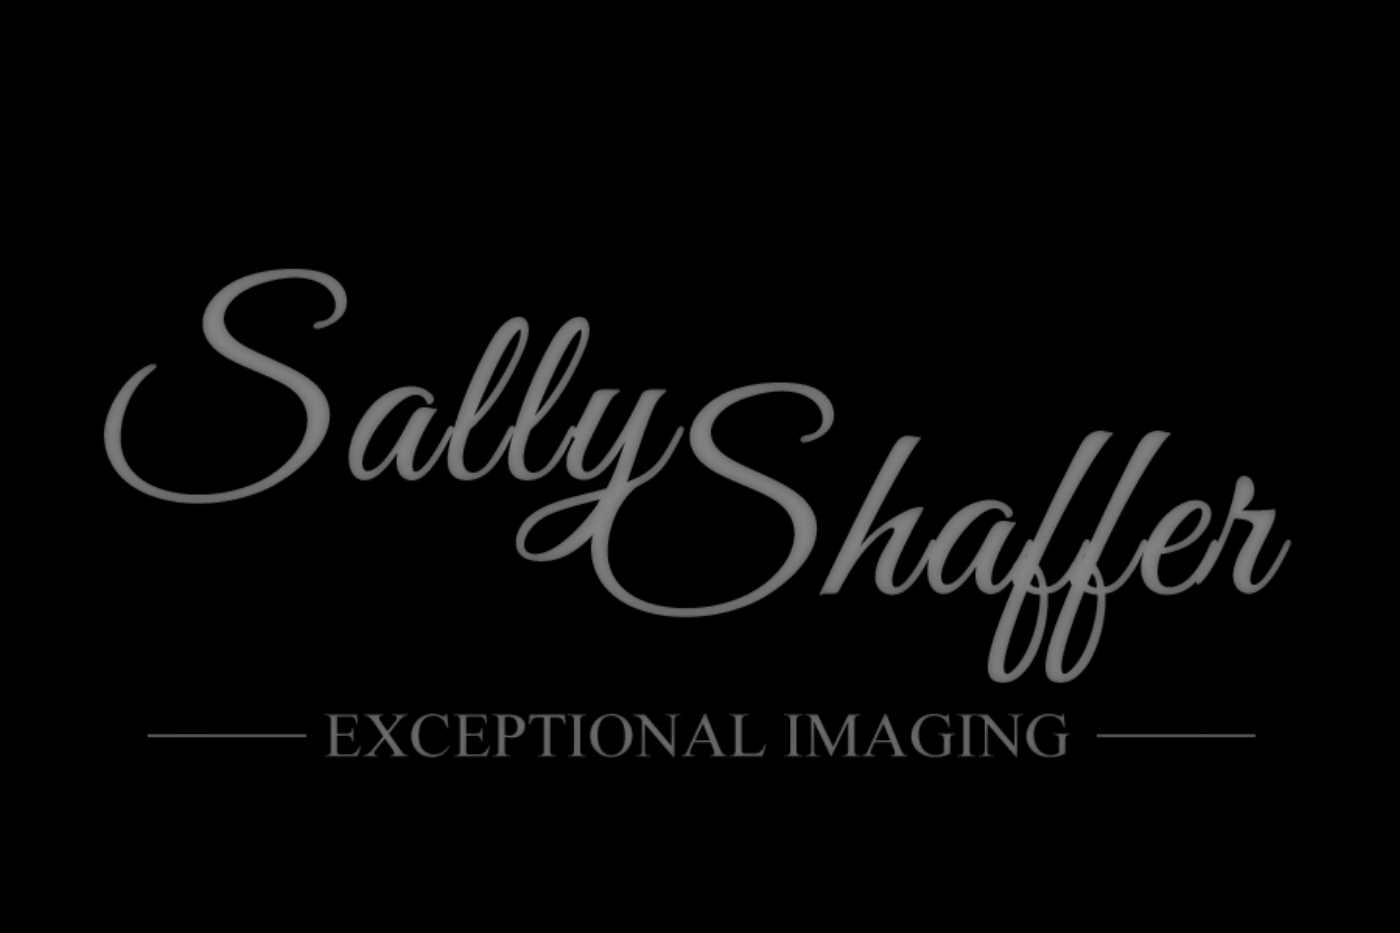 Sally Shaffer Exceptional Imaging